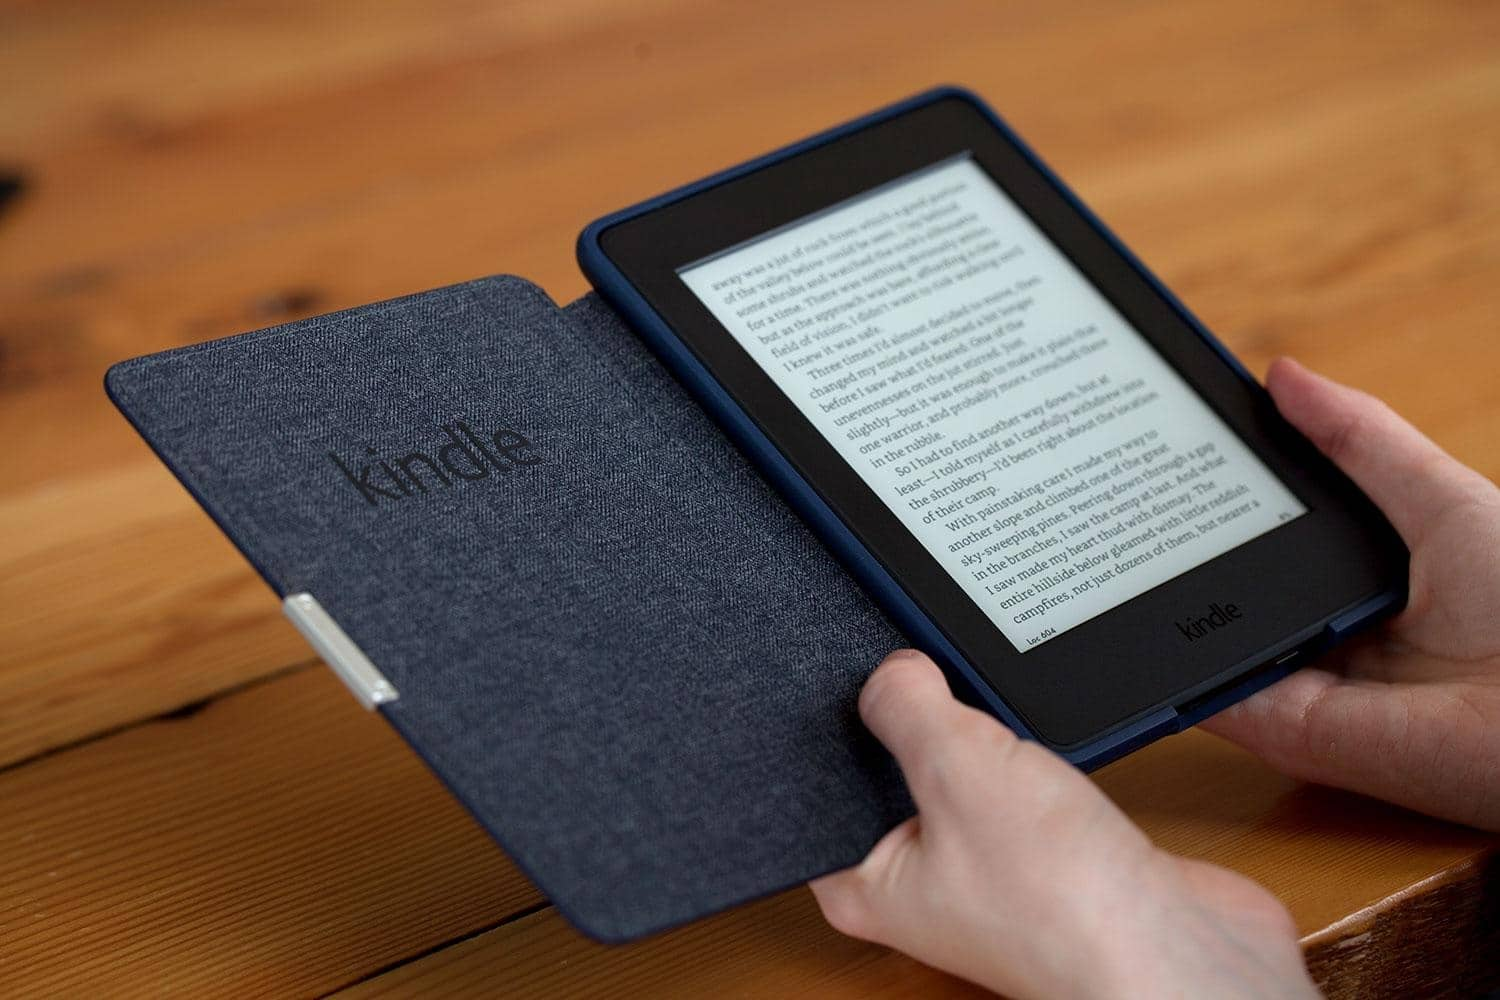 Kindle Libro Electronico Ebooks Estilo Kindle Baratos En Aliexpress Guía De Compra